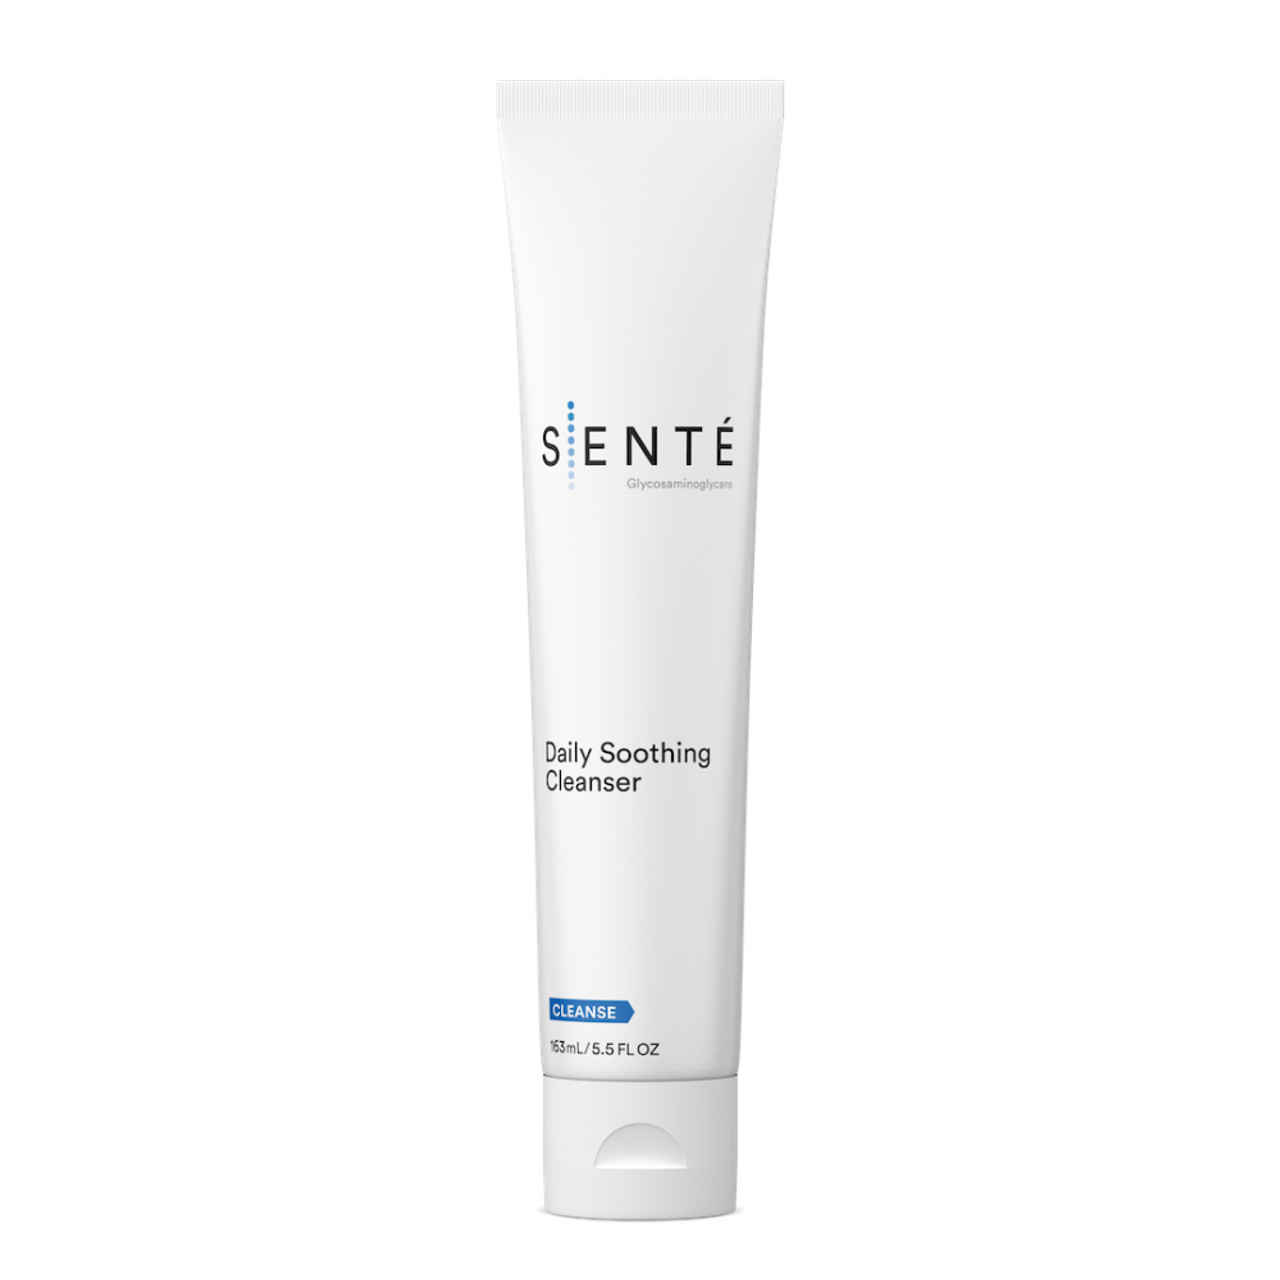 Sente Daily Soothing Cleanser 1